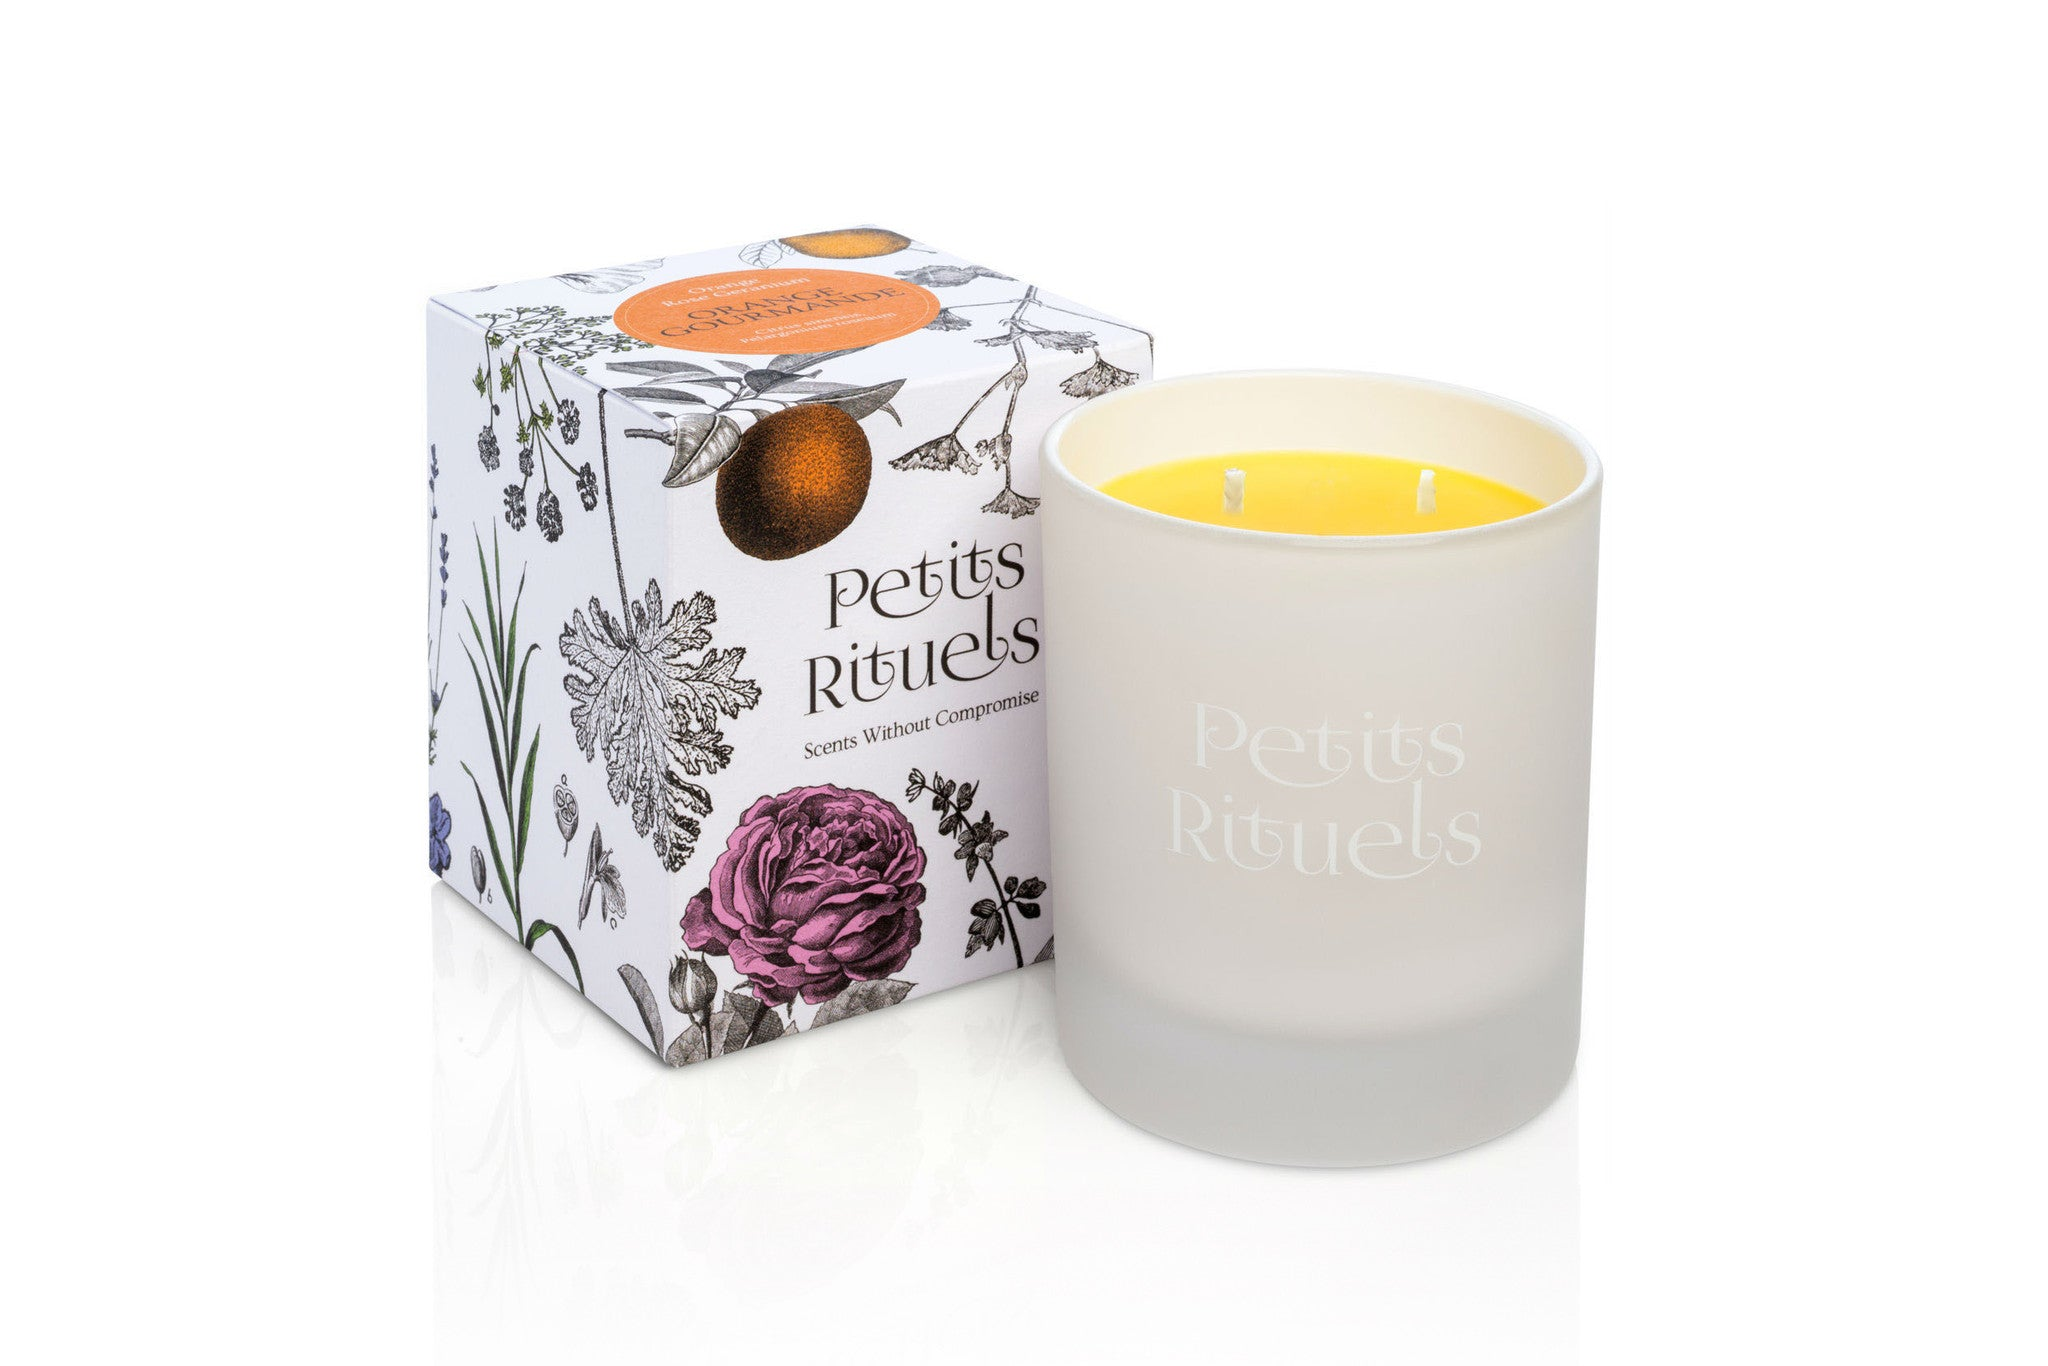 Orange Scented Candle Petits Rituels